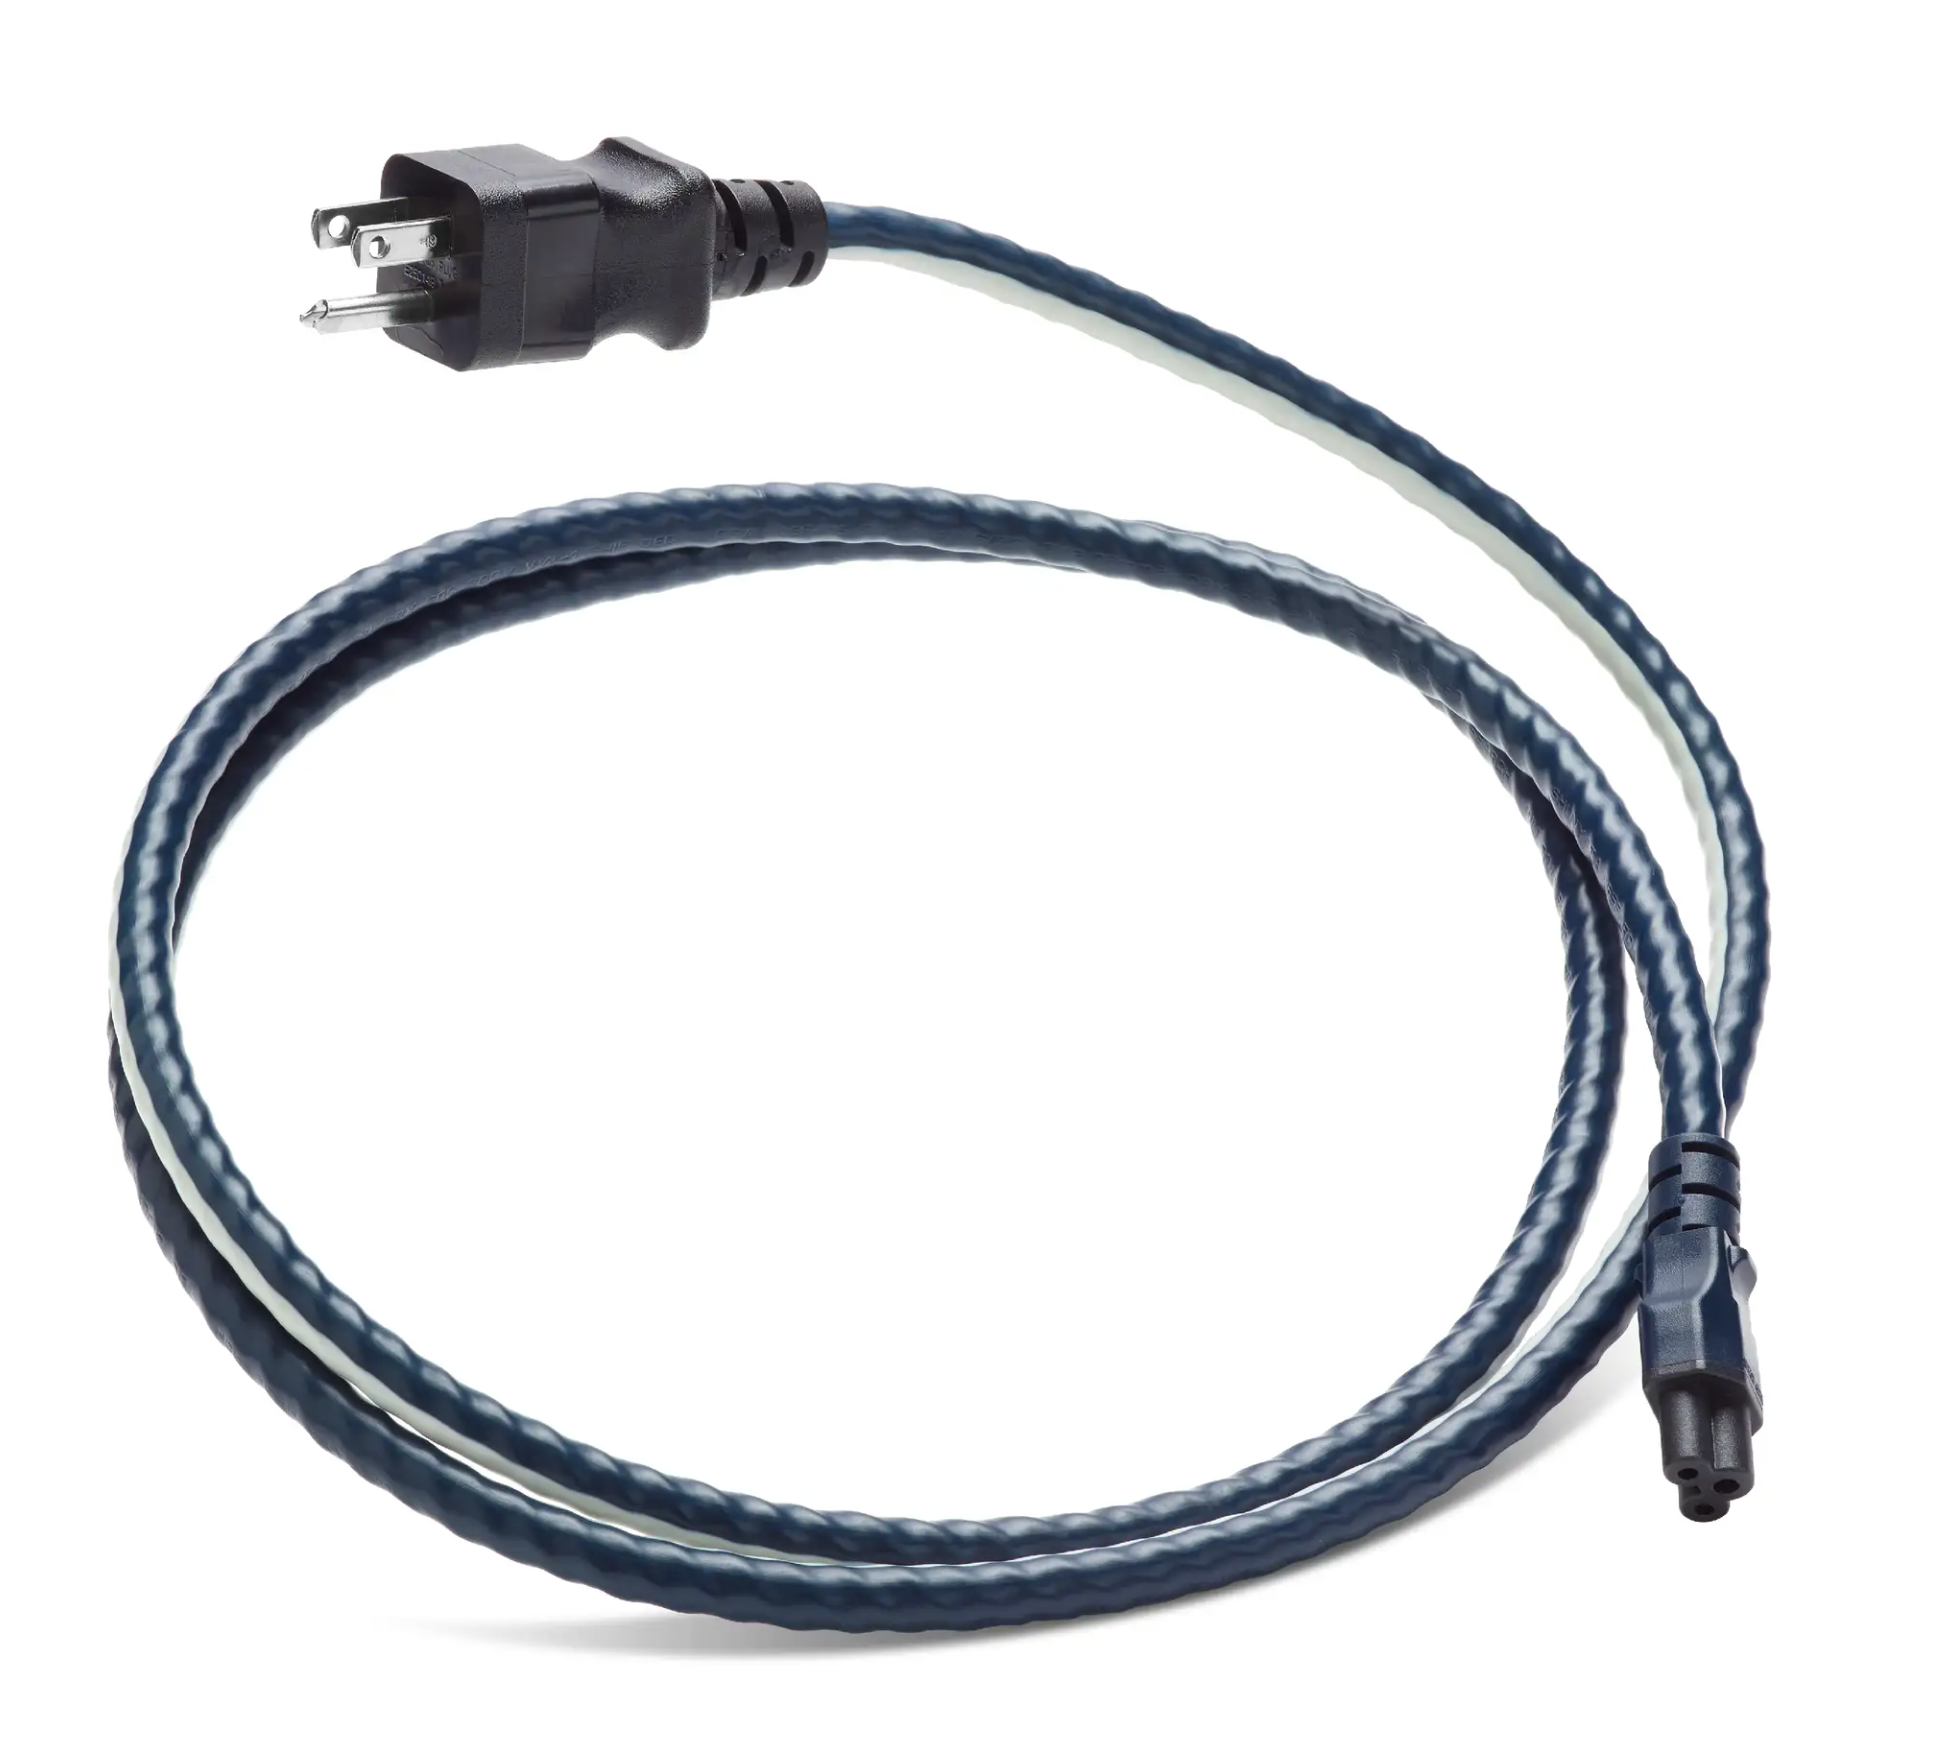 Shunyata Research  Venom V14 Mini Power Cable Adapter